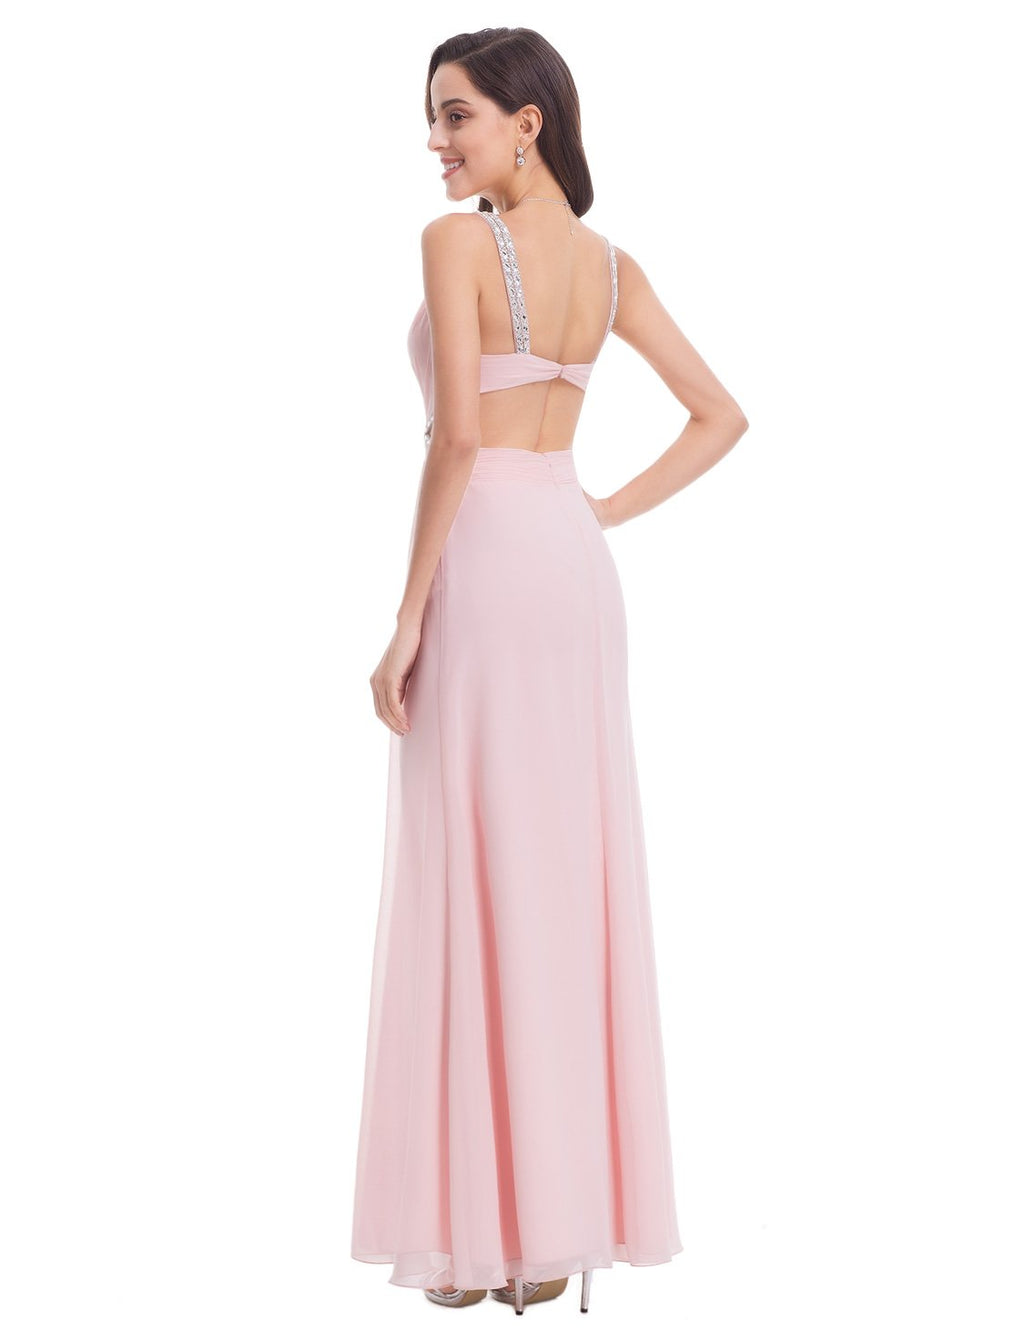 Sexy Front And Back Evening Dress Pink